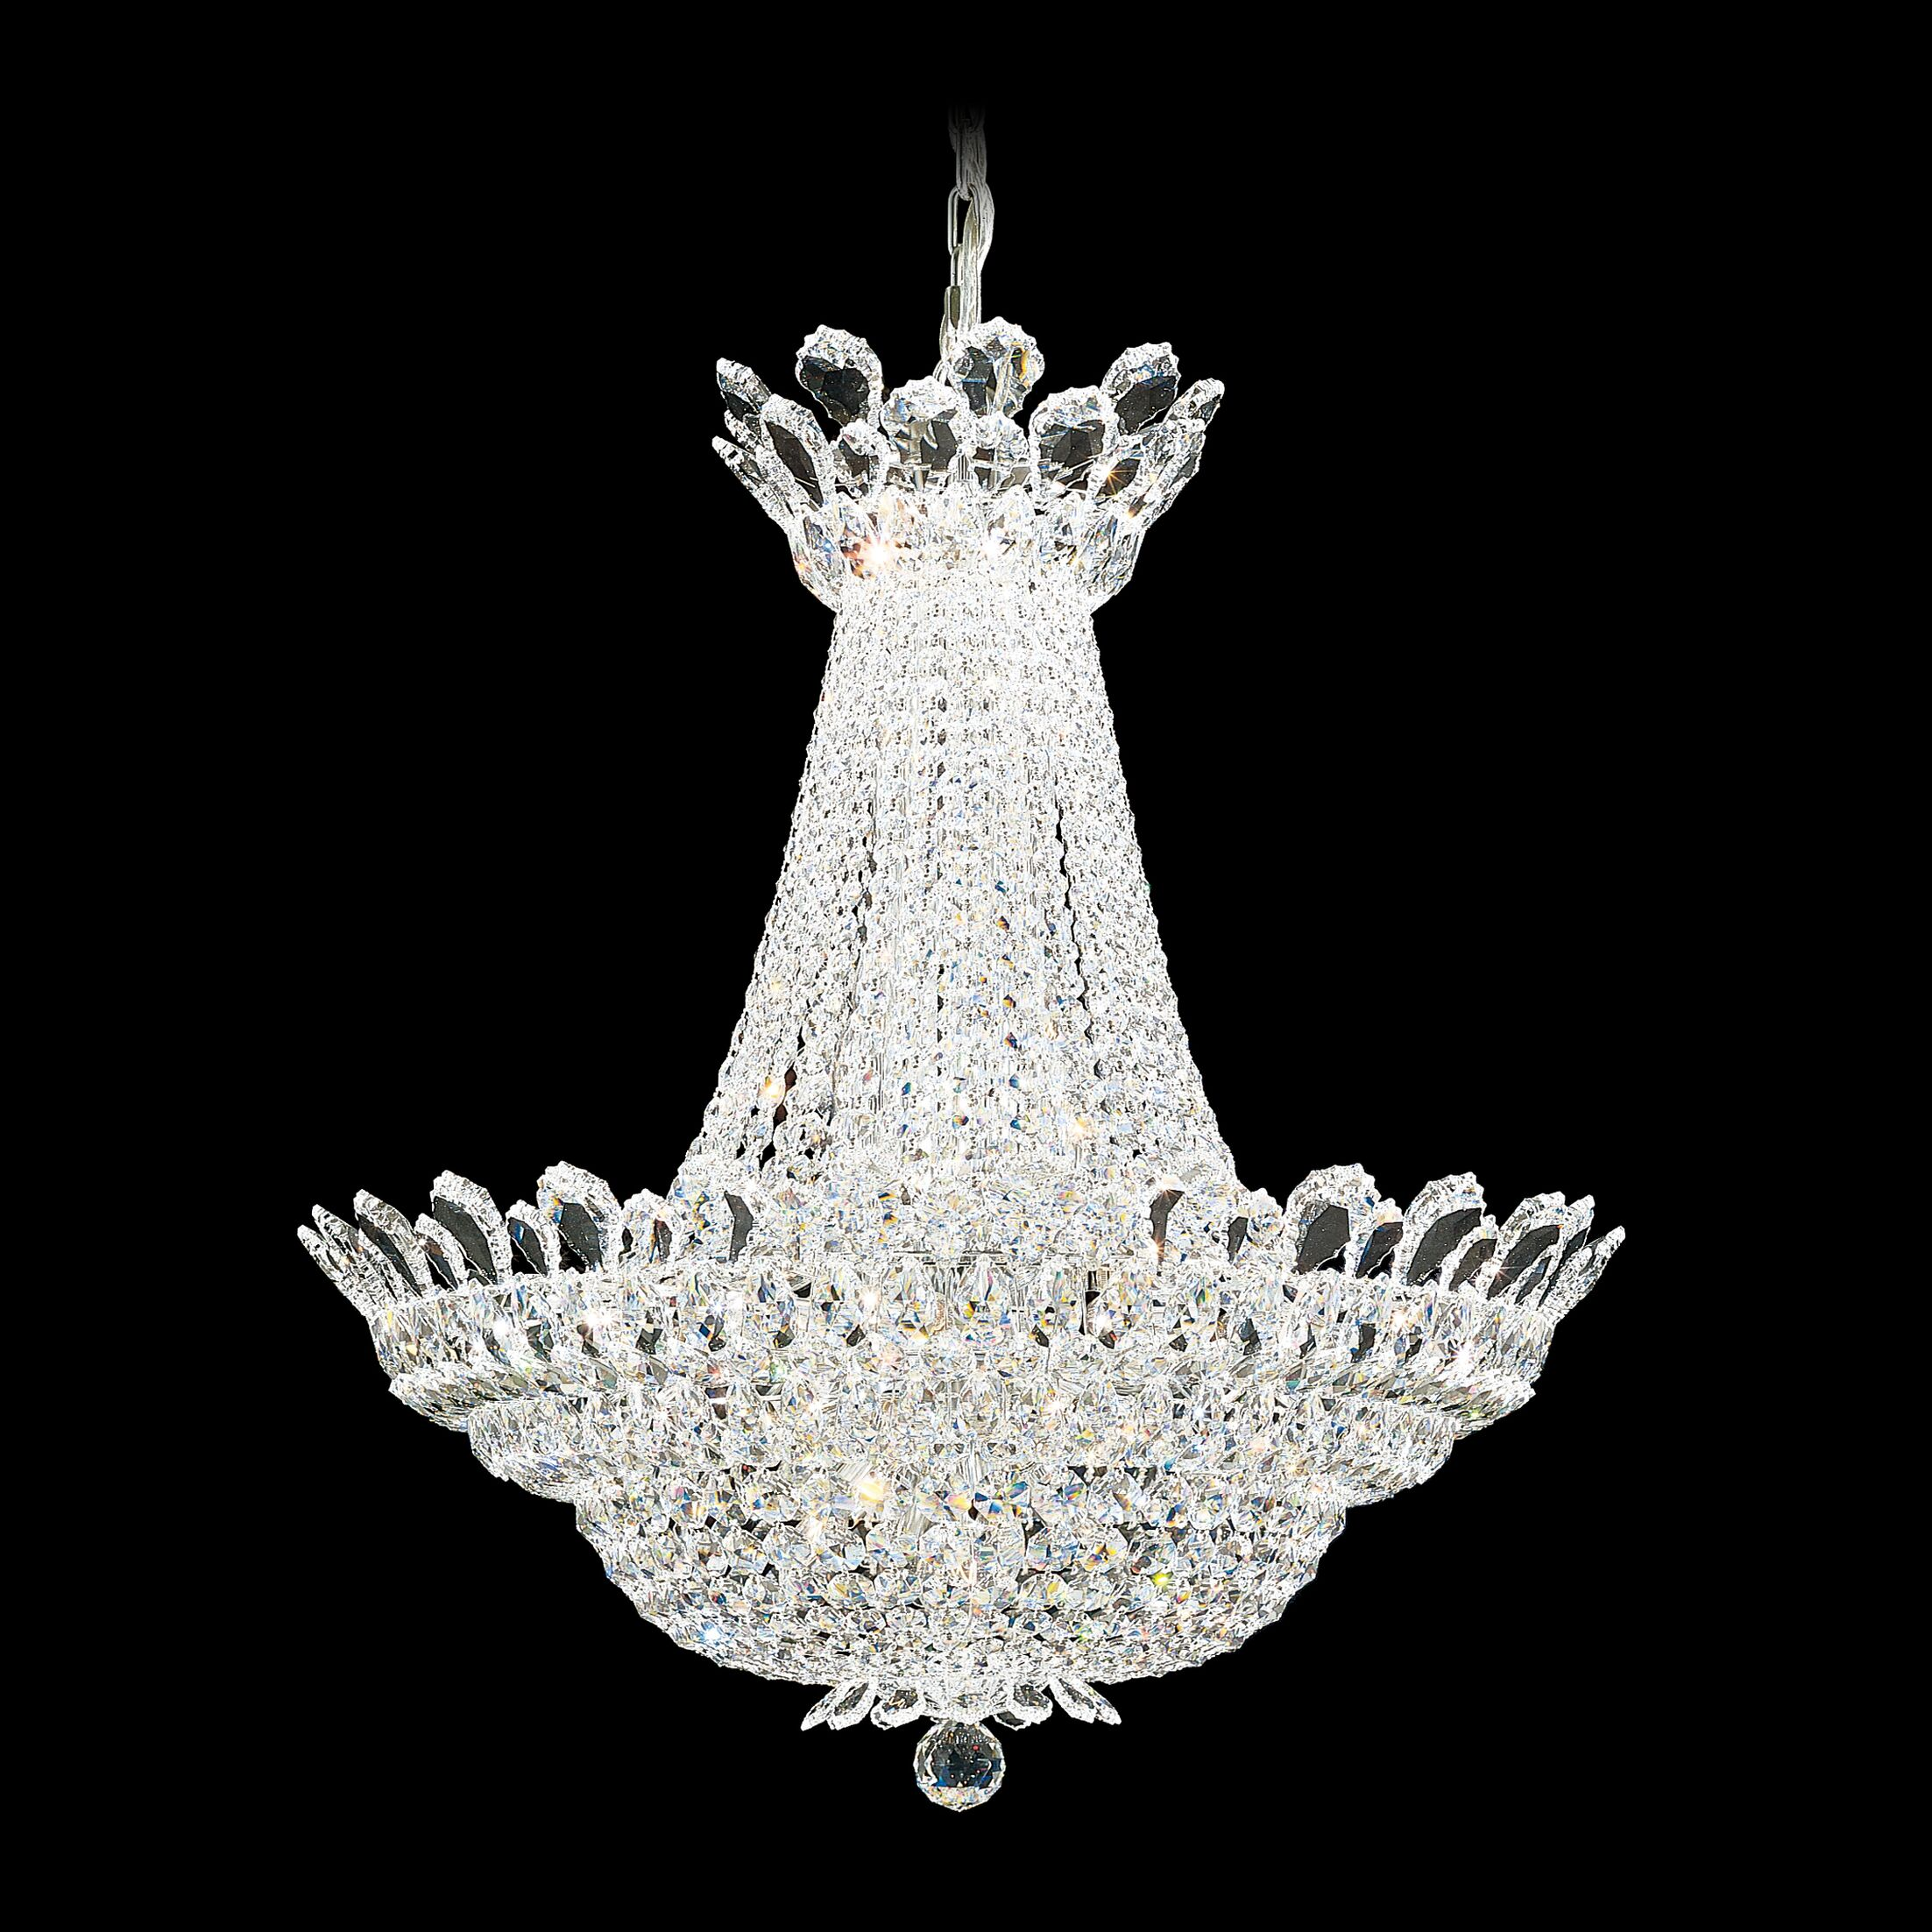 Trilliane Empire Chandelier Size / Crystal Color: 30